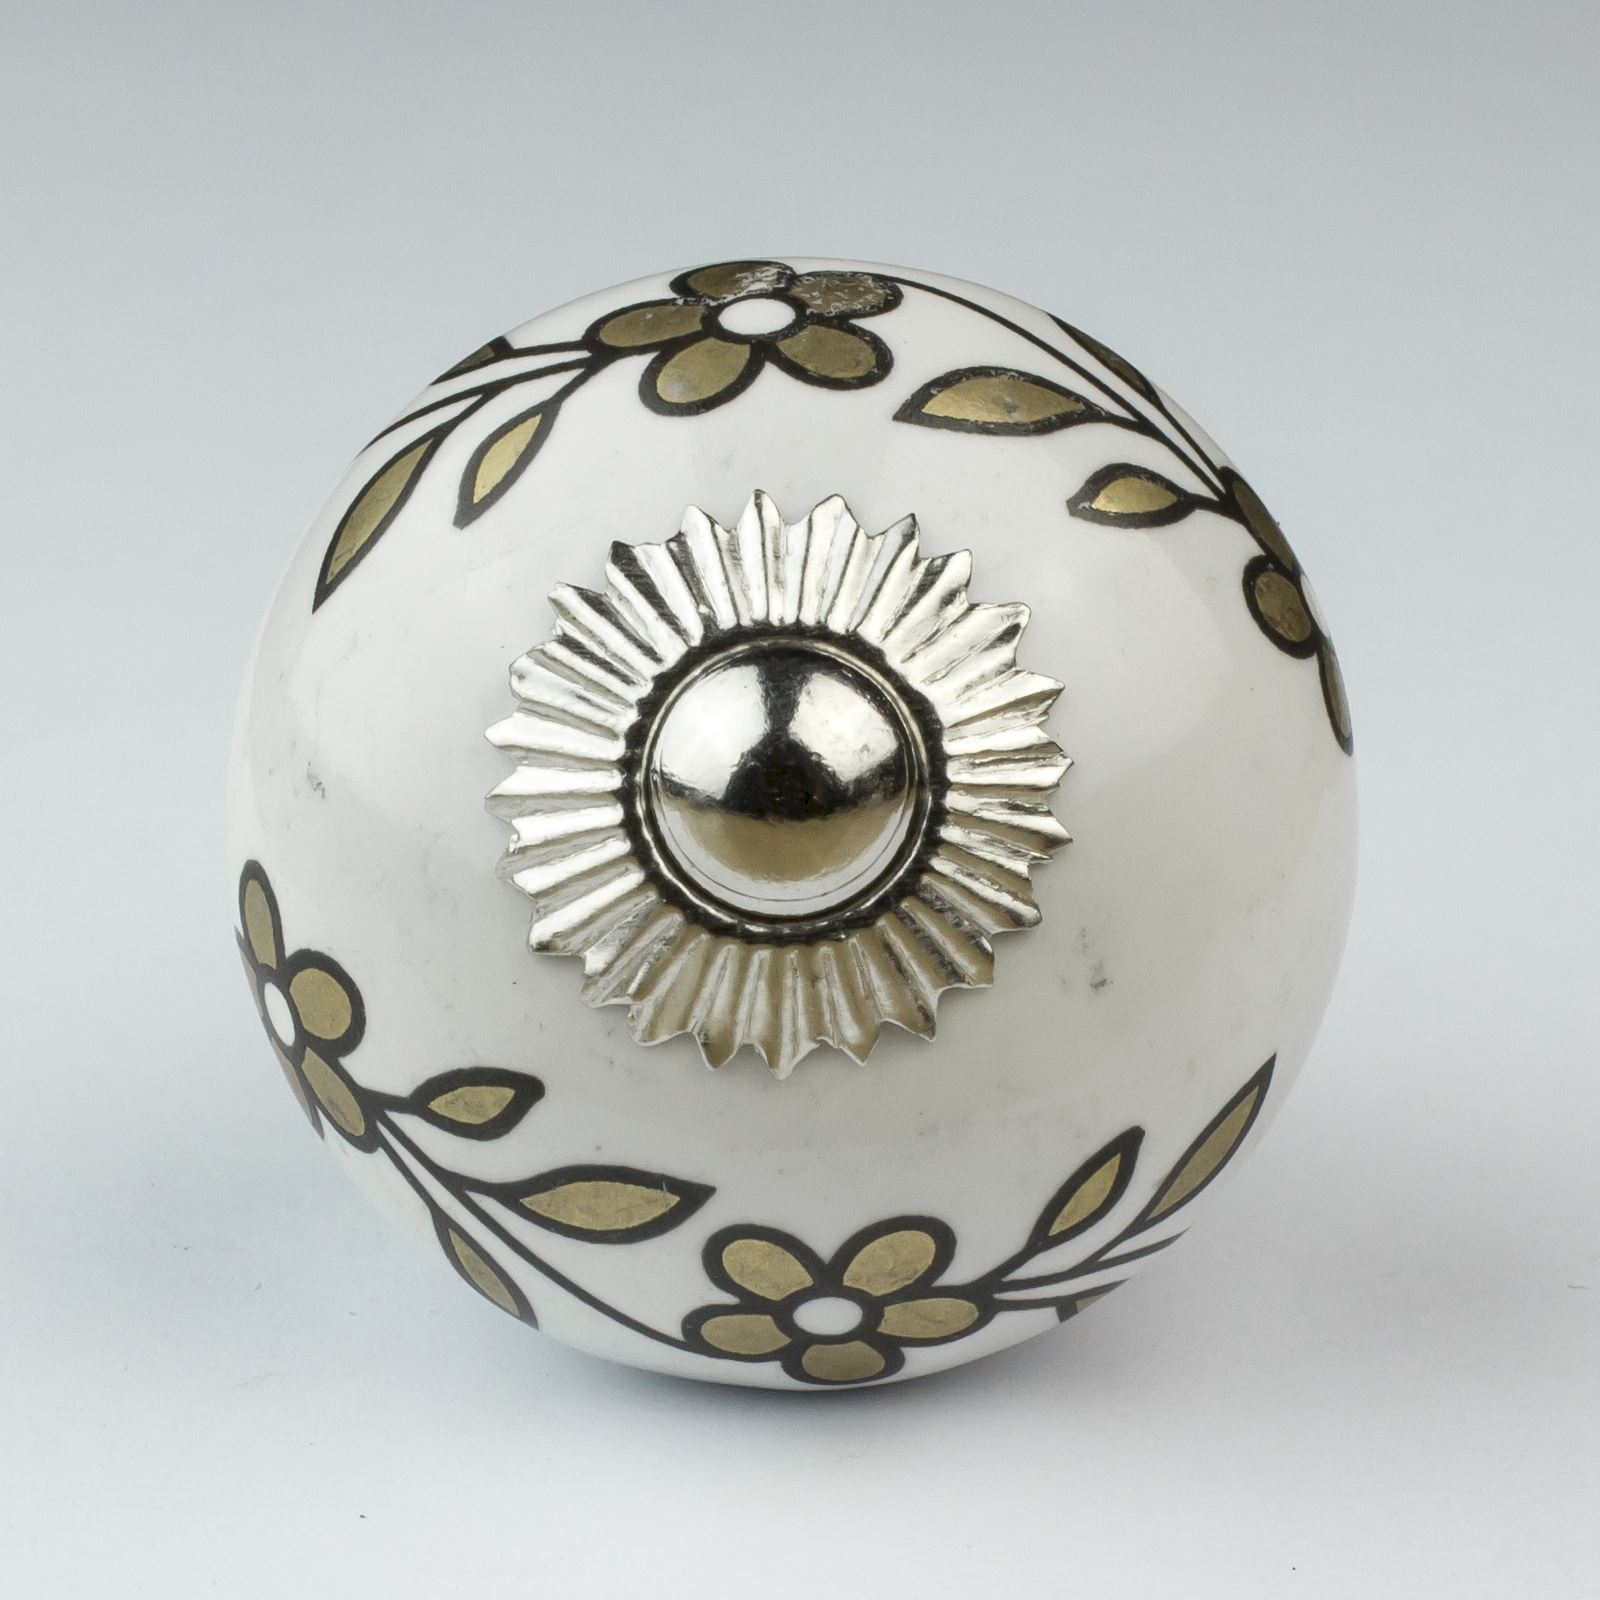 Black White Silver Grey Ceramic Door Knobs Handles Furniture Throughout Porcelain Cupboard Knobs (Image 5 of 25)